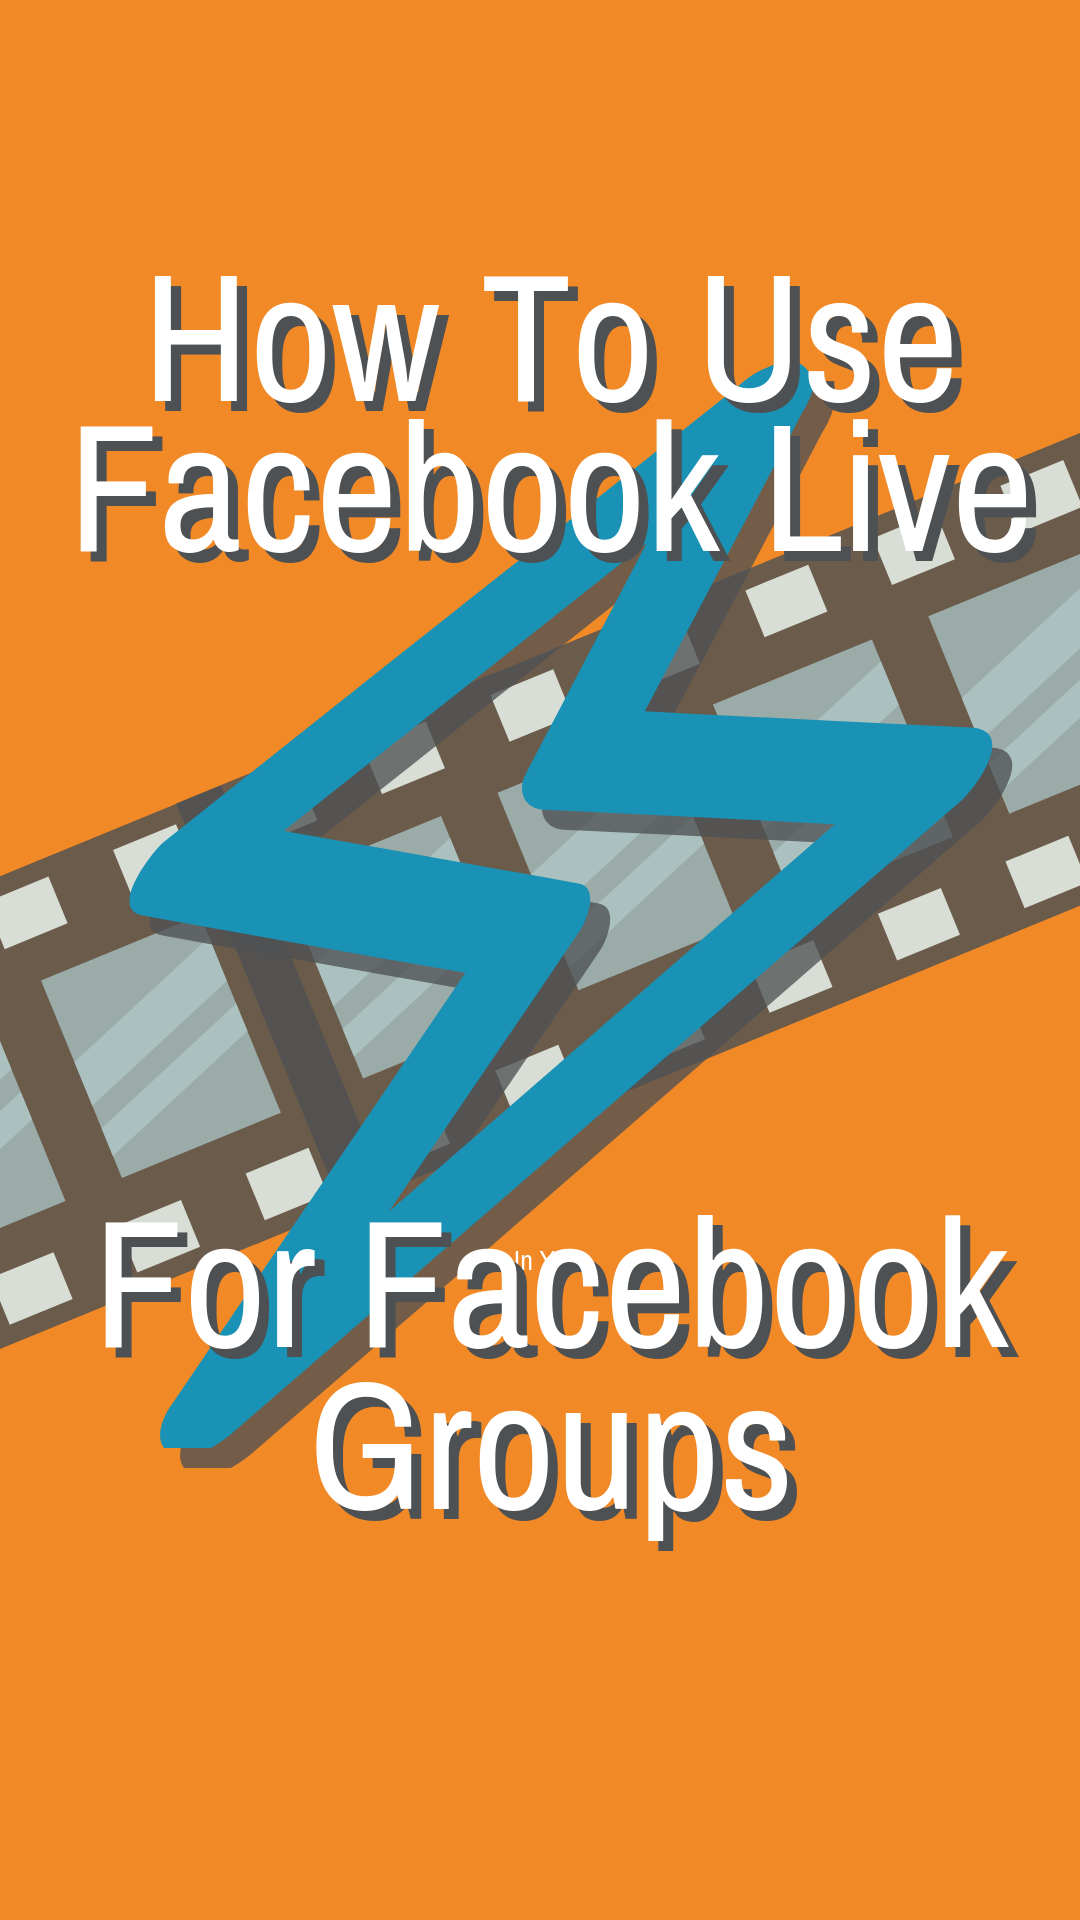 There are a lot of groups on Facebook. And when I say a lot, a lot. Back in 2010 AdWeek reported that there were 620 Million groups, and that was way before they were cool. Maintaining an active group with all that competition is becoming a challenge. But there's a fix. Facebook Live.  #AmandasLiveTips #facebooklive #facebooklivemarketing #facebookvideomarketing #facebookvideotips #facebooklivetips #facebookmarketing #facebookforbusiness #facebookgroup